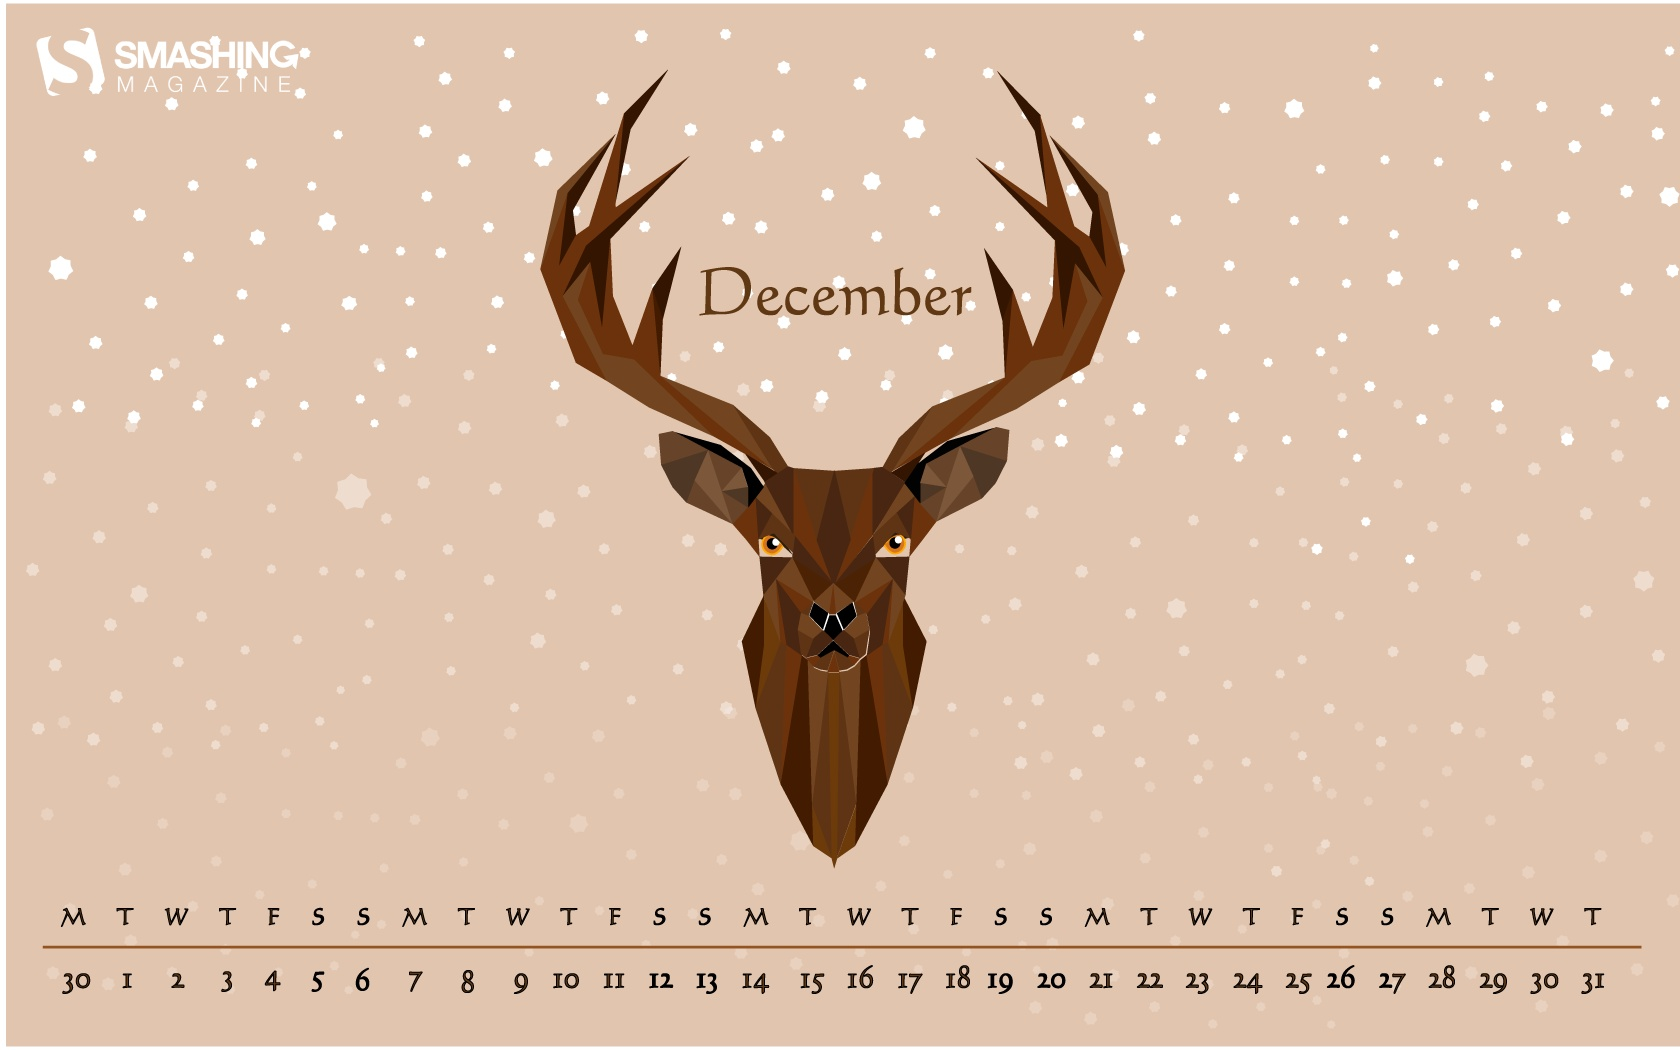 Month calendar Christmas desktop wallpaper 52532